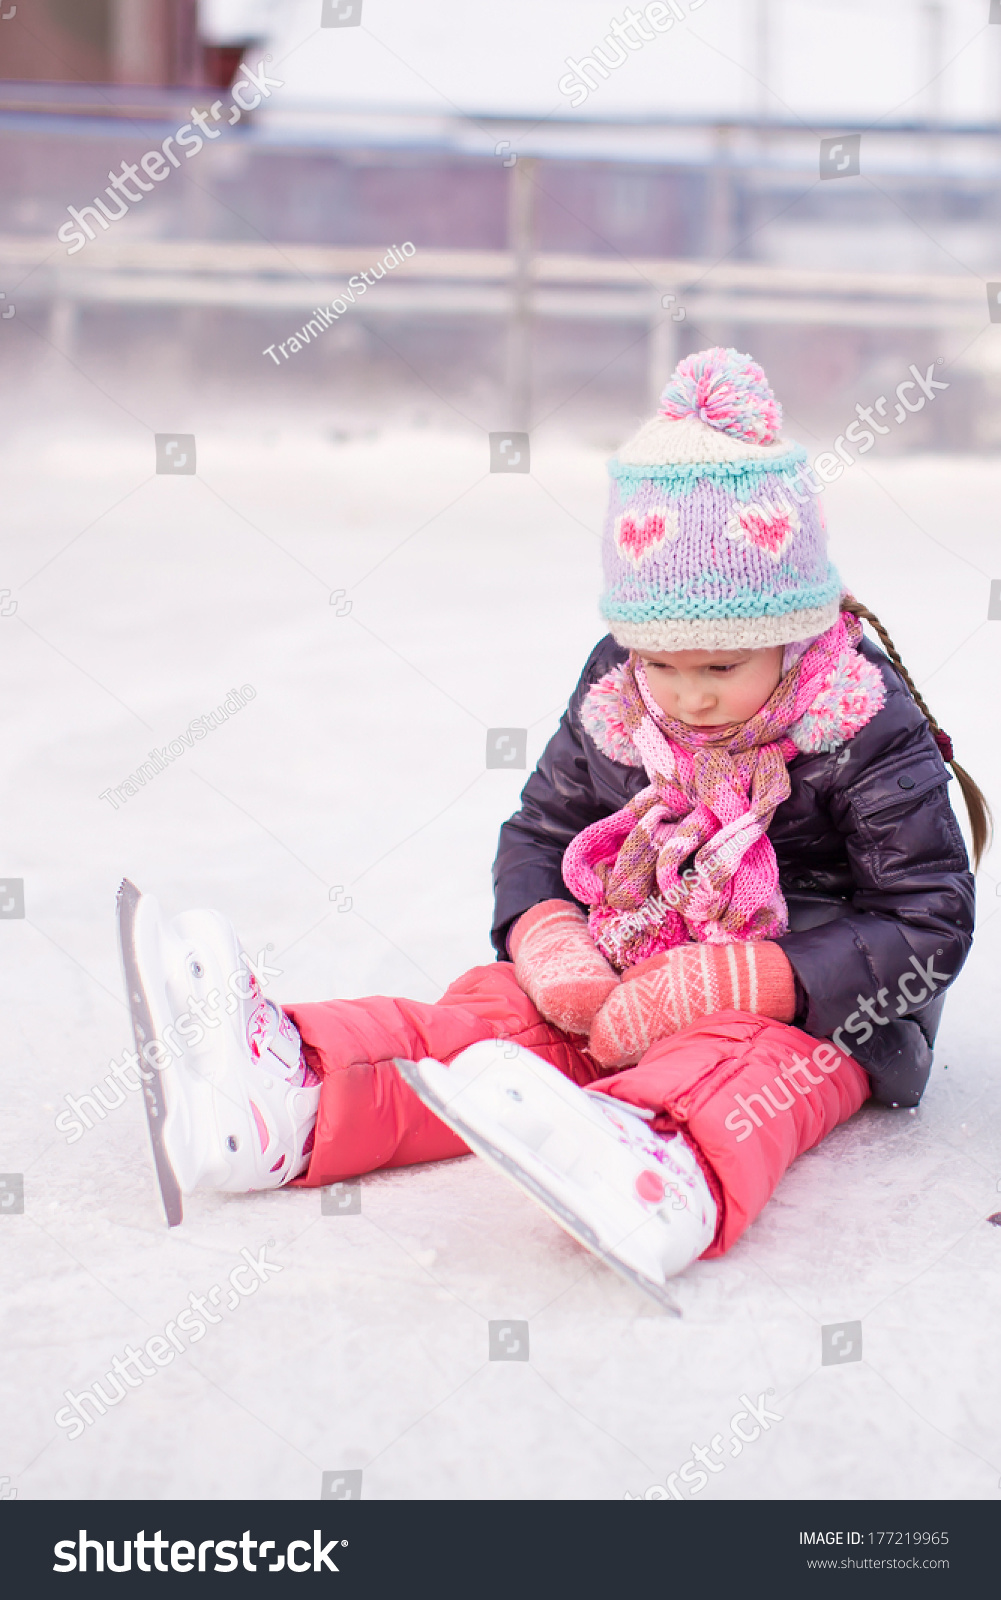 Sad Girl Sitting Alone Outside Stock Photos Sad Girl: Little Sad Girl Sitting On A Skating Rink After The Fall